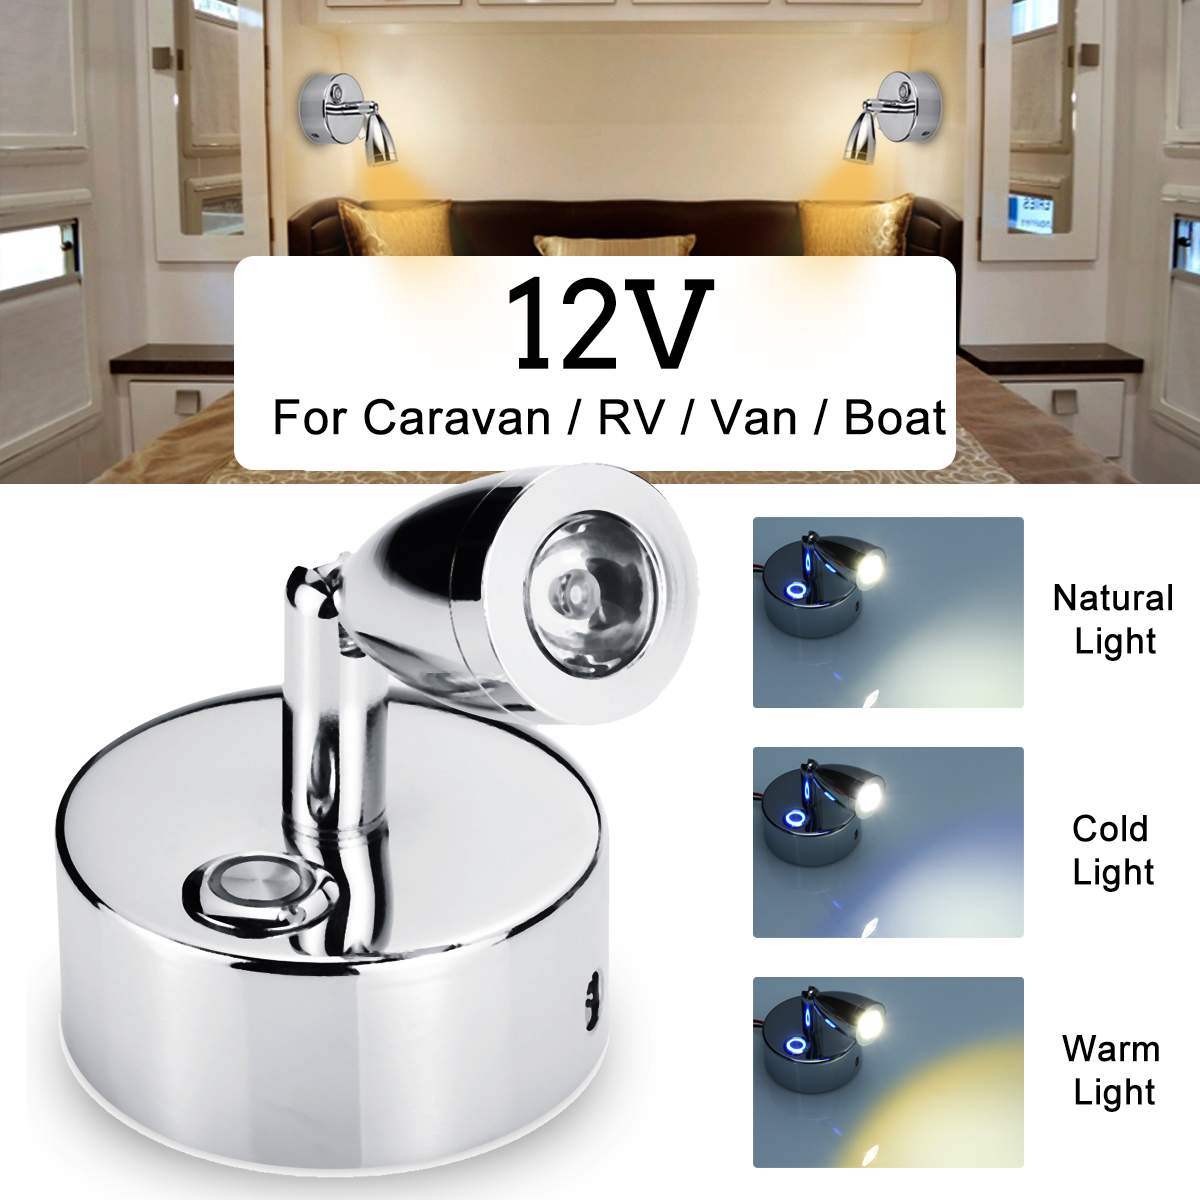 Rotatable Adjustable 12V LED Spot Reading Light Lamp Touchs Switch For RV Van Caravan Boat Wall Spotlight Home Interior Light